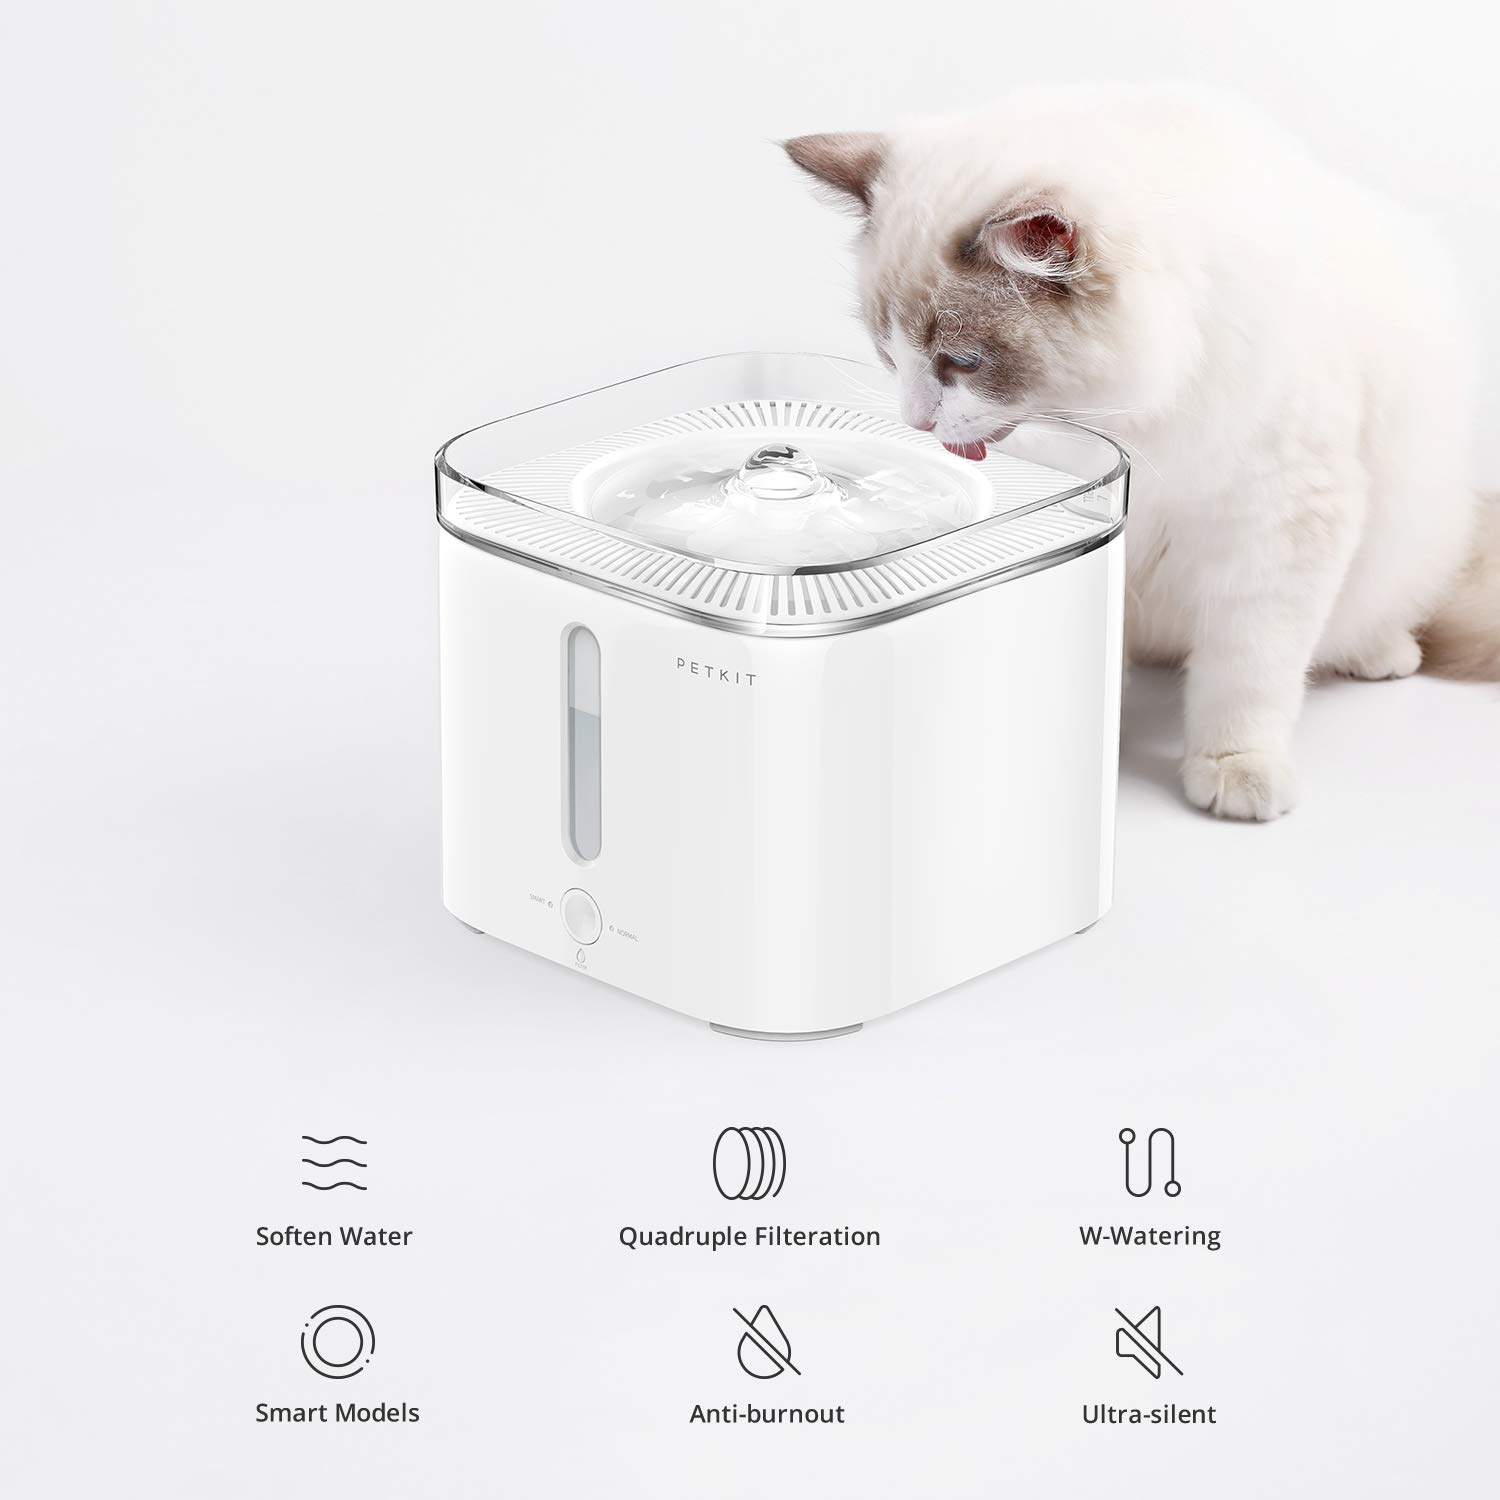 PETKIT EVERSWEET Cat Water Fountain 2.0, 2L Automatic Pet Water Fountain for Dog and Cat Super Quiet with Water-Shortage Alert and Filter-Change Reminder, Auto Power-Off Pet Water Dispenser by PETKIT (Image #3)